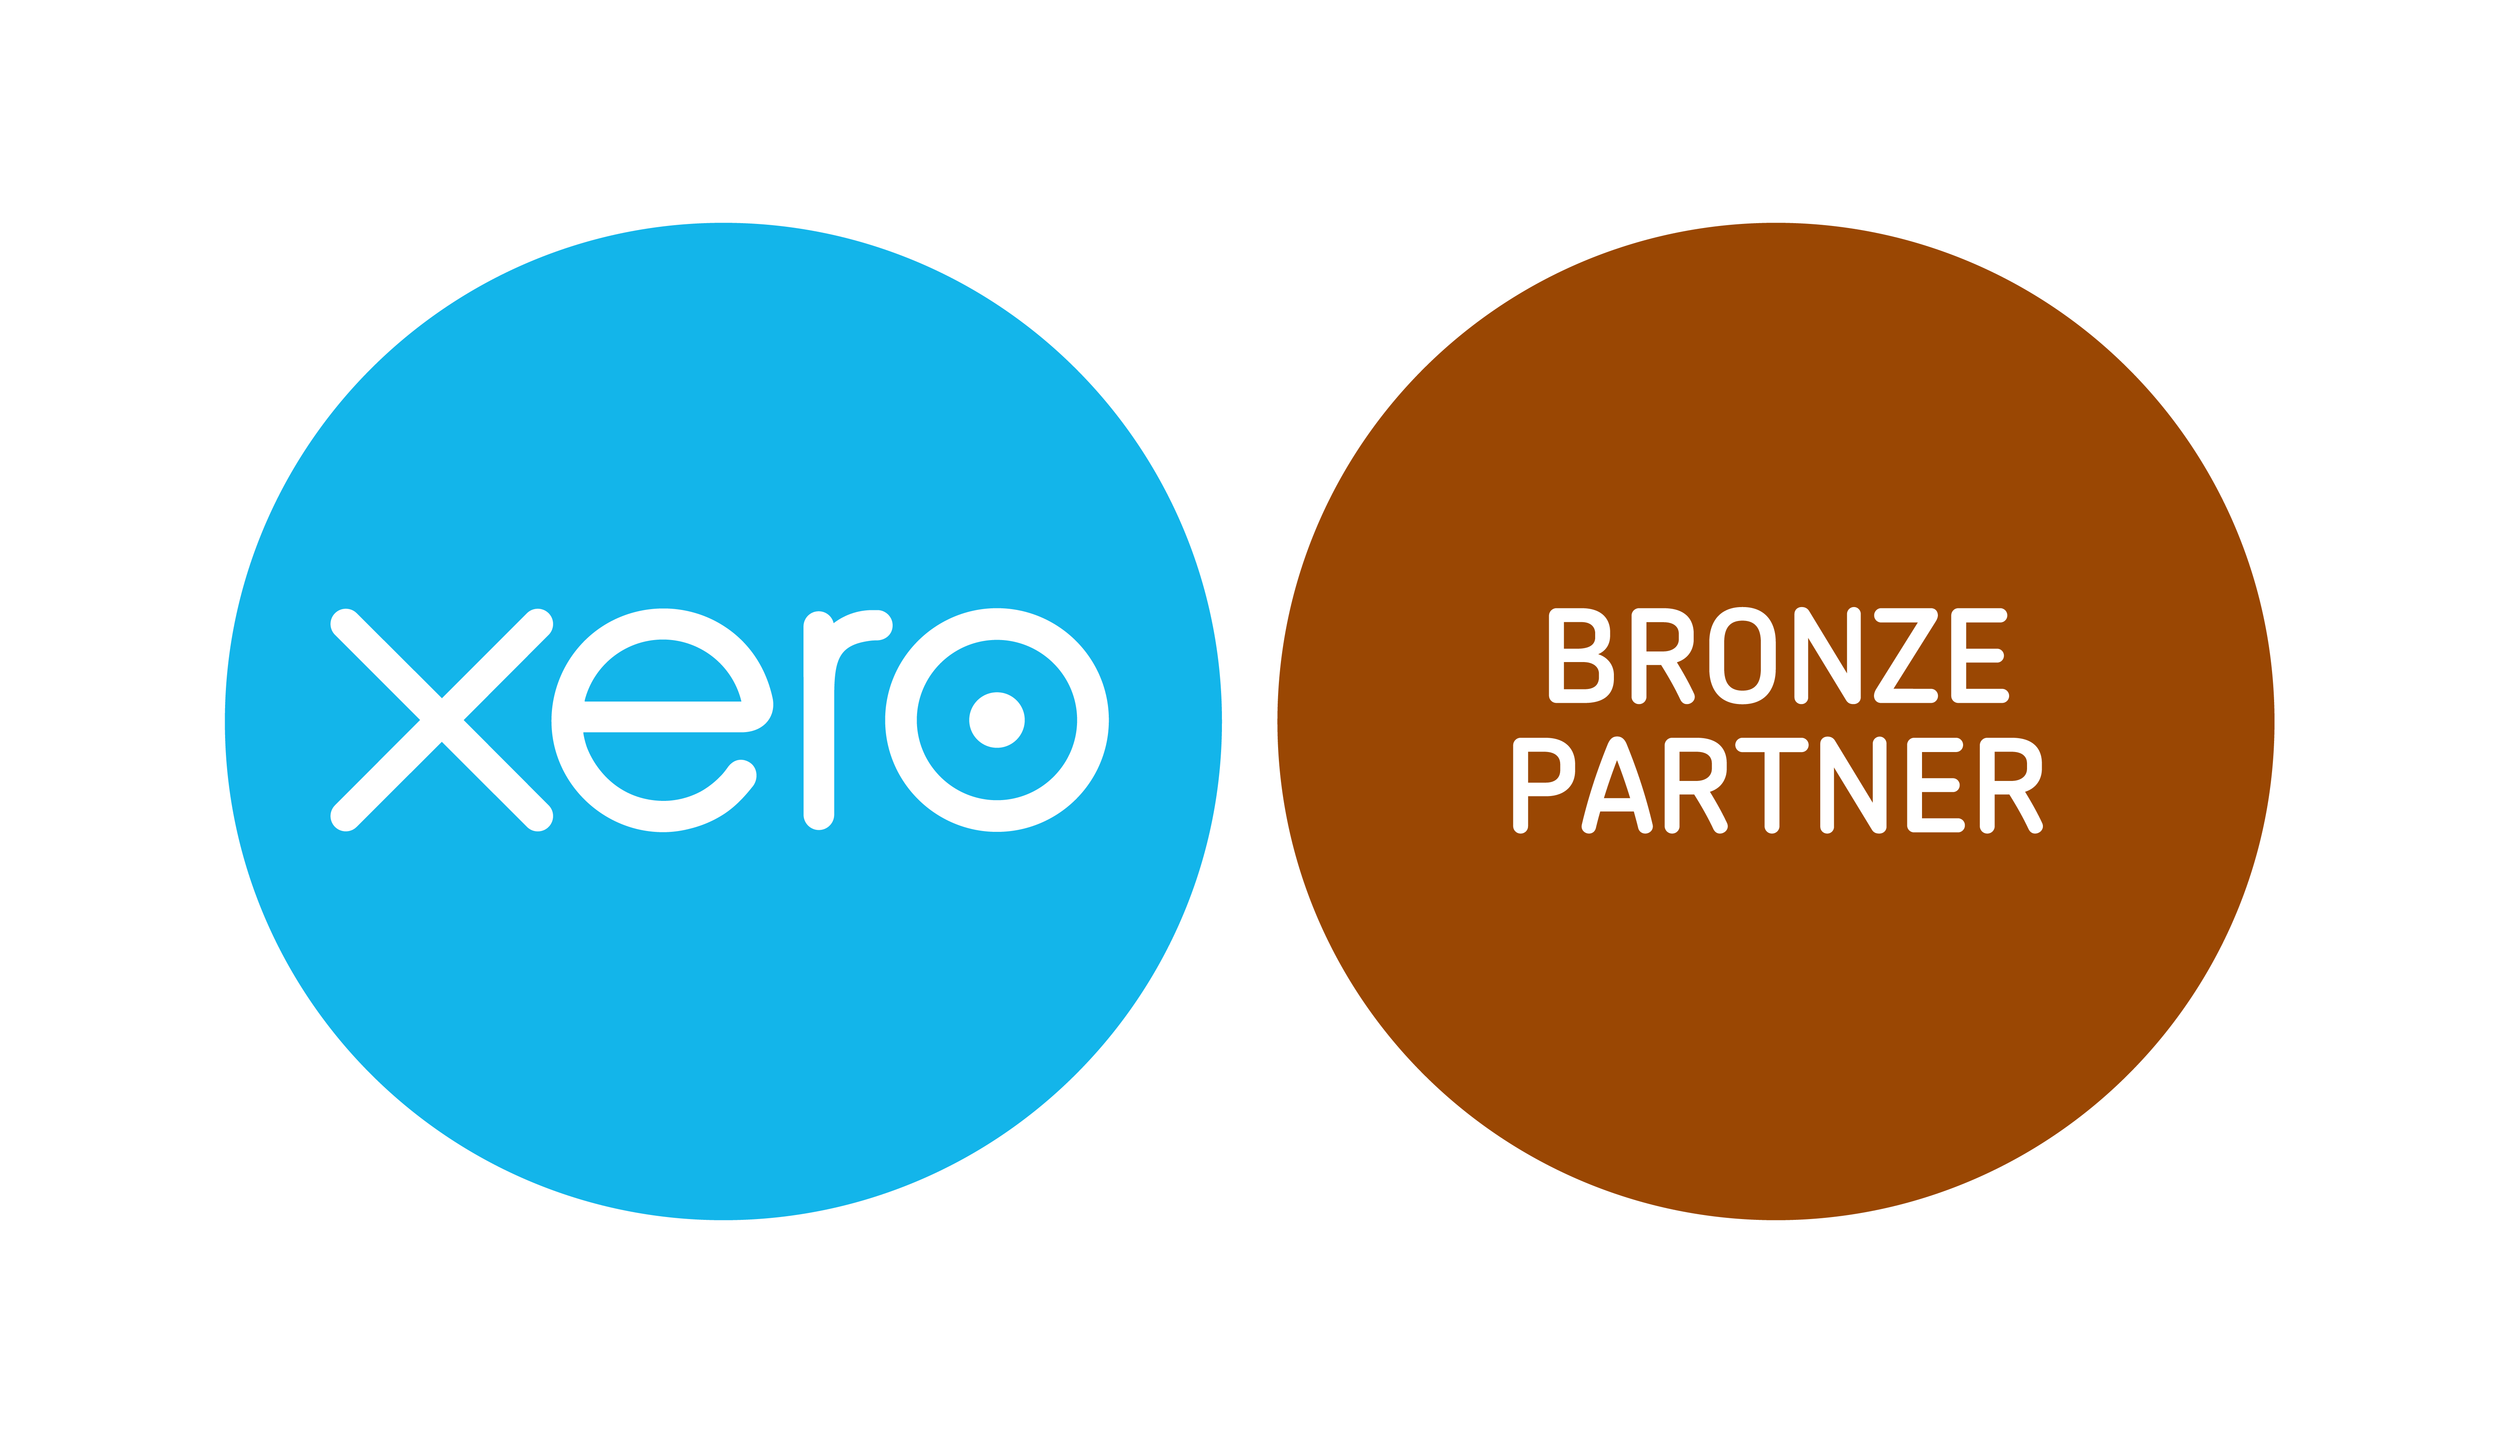 xero-bronze-partner-badge-RGB.png